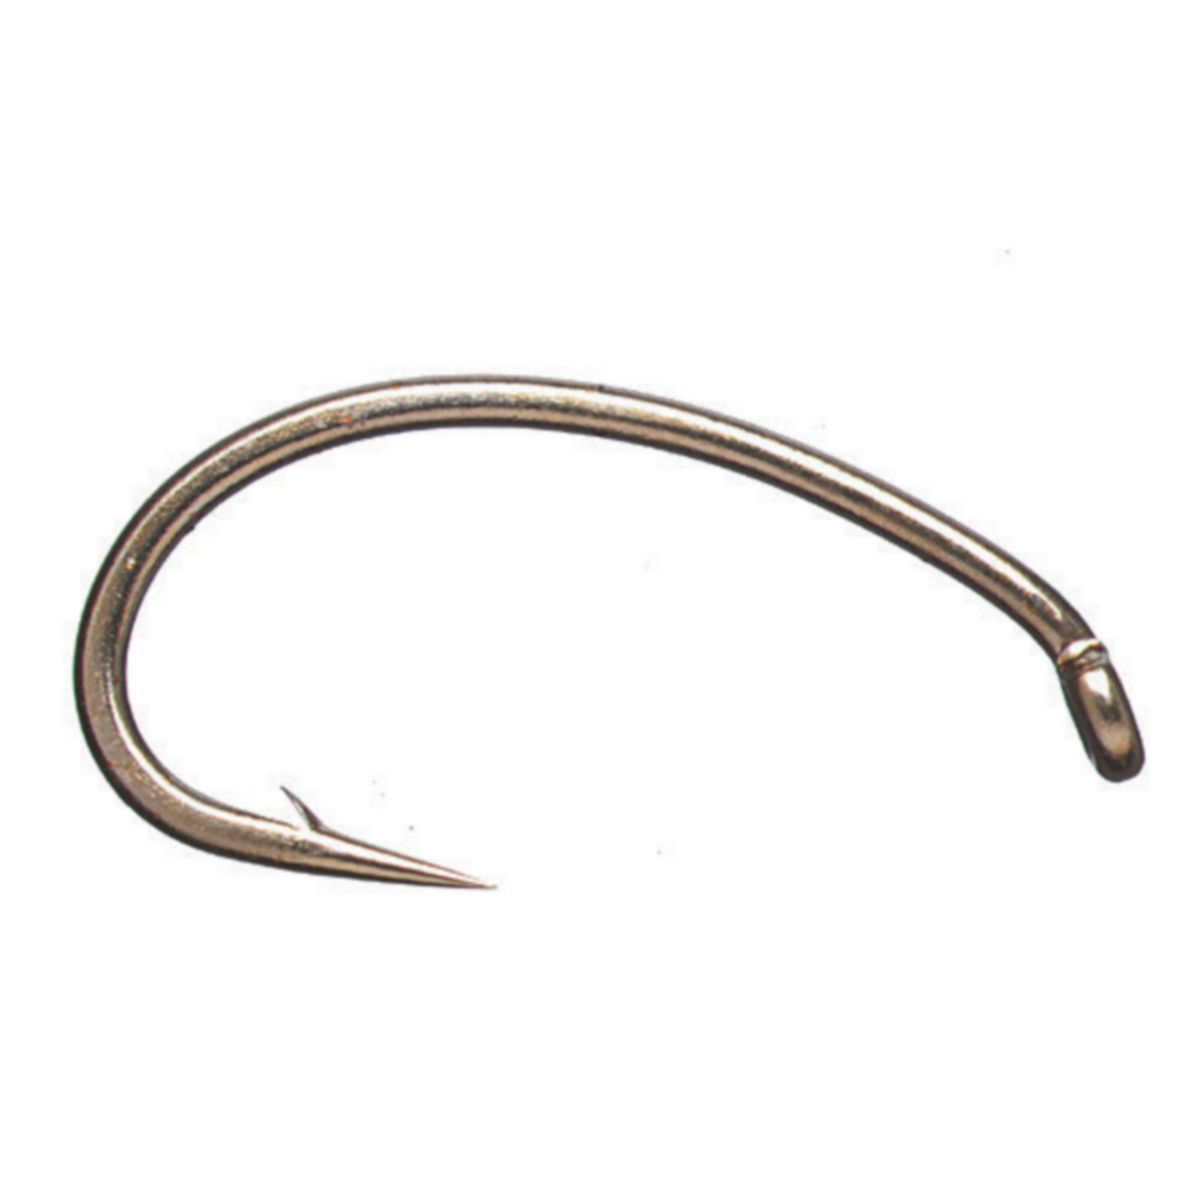 Scud, Shrimp, & San Juan Worm Hook - Box of 25 - image number 0